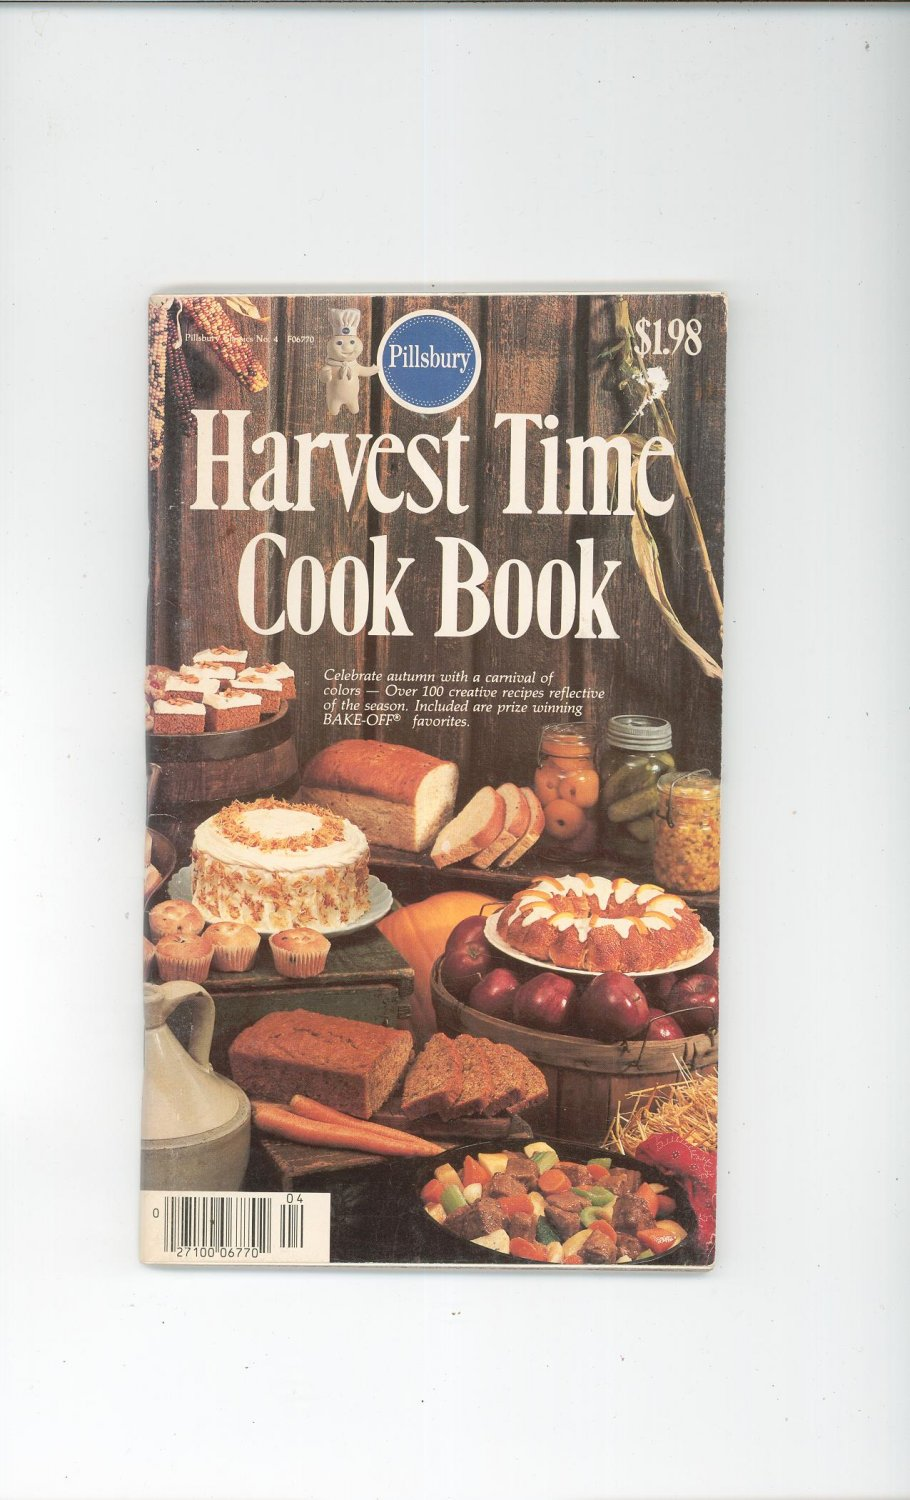 Pillsbury Harvest Time Cook Book Cookbook Classic No. 4  1980